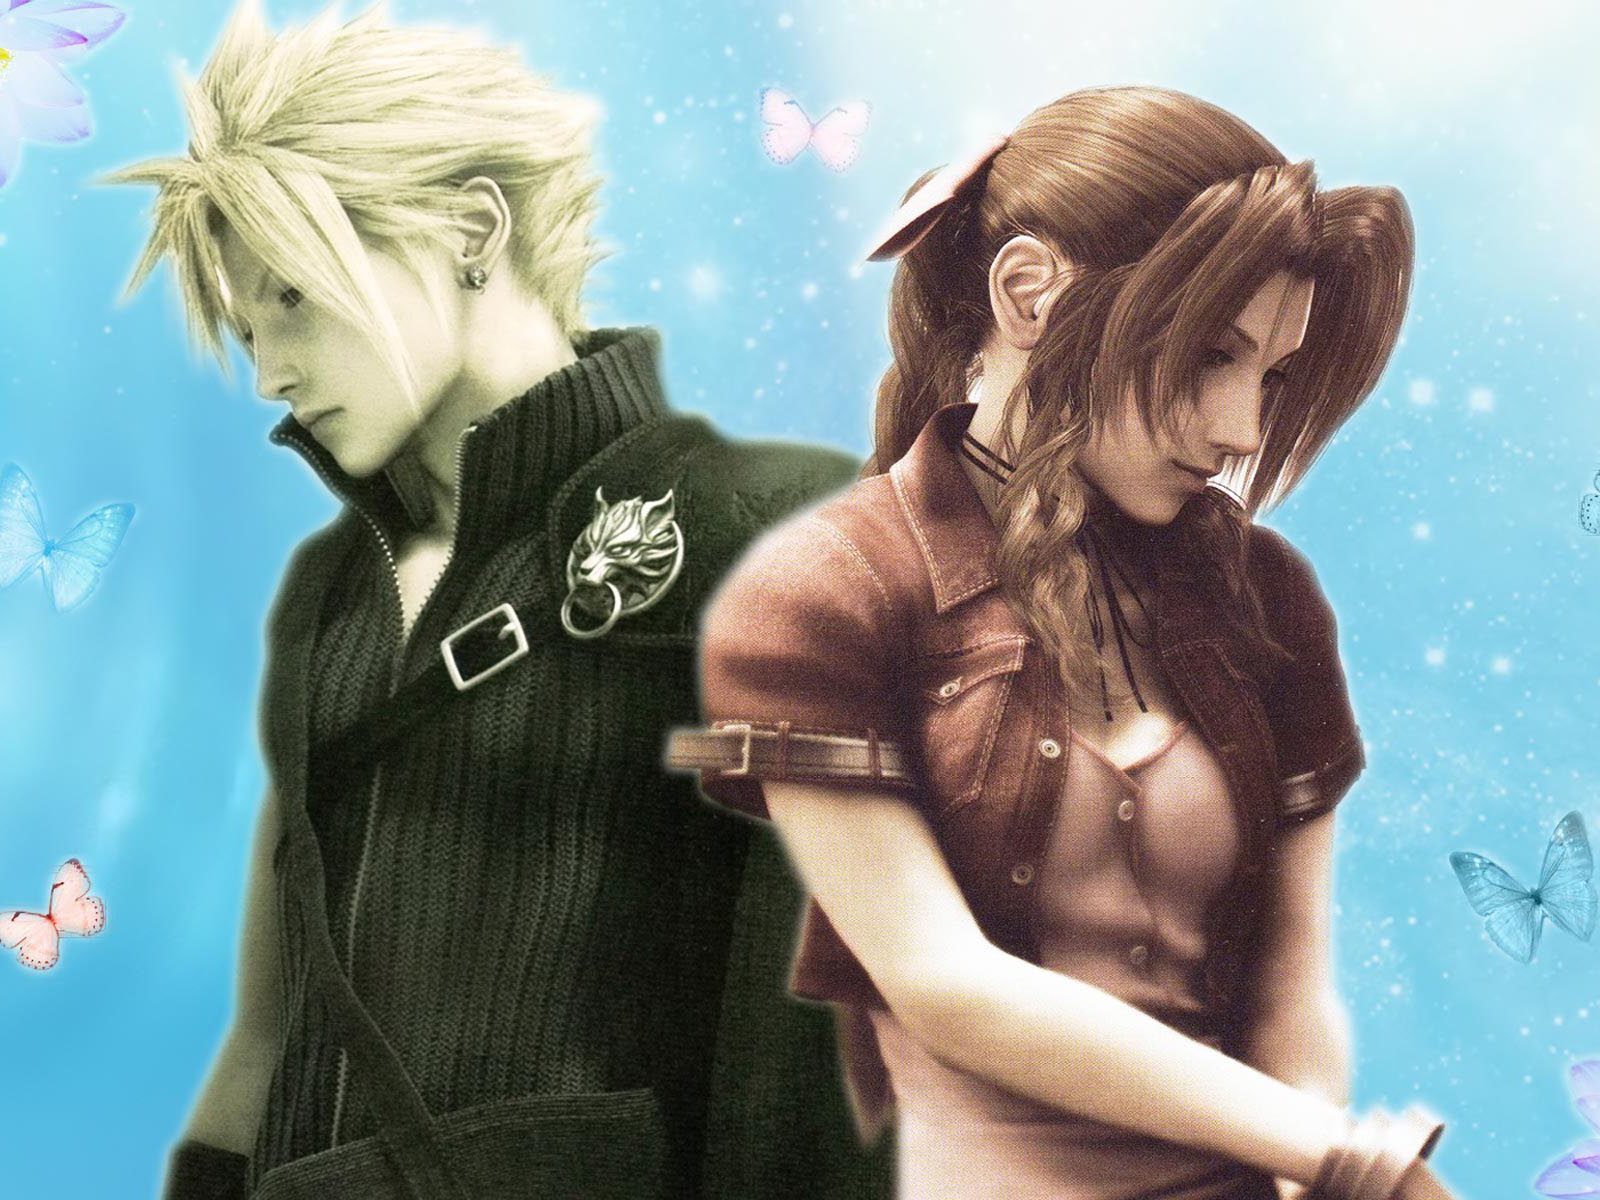 wallpapers Final Fantasy Game Wallpapers 1600x1200